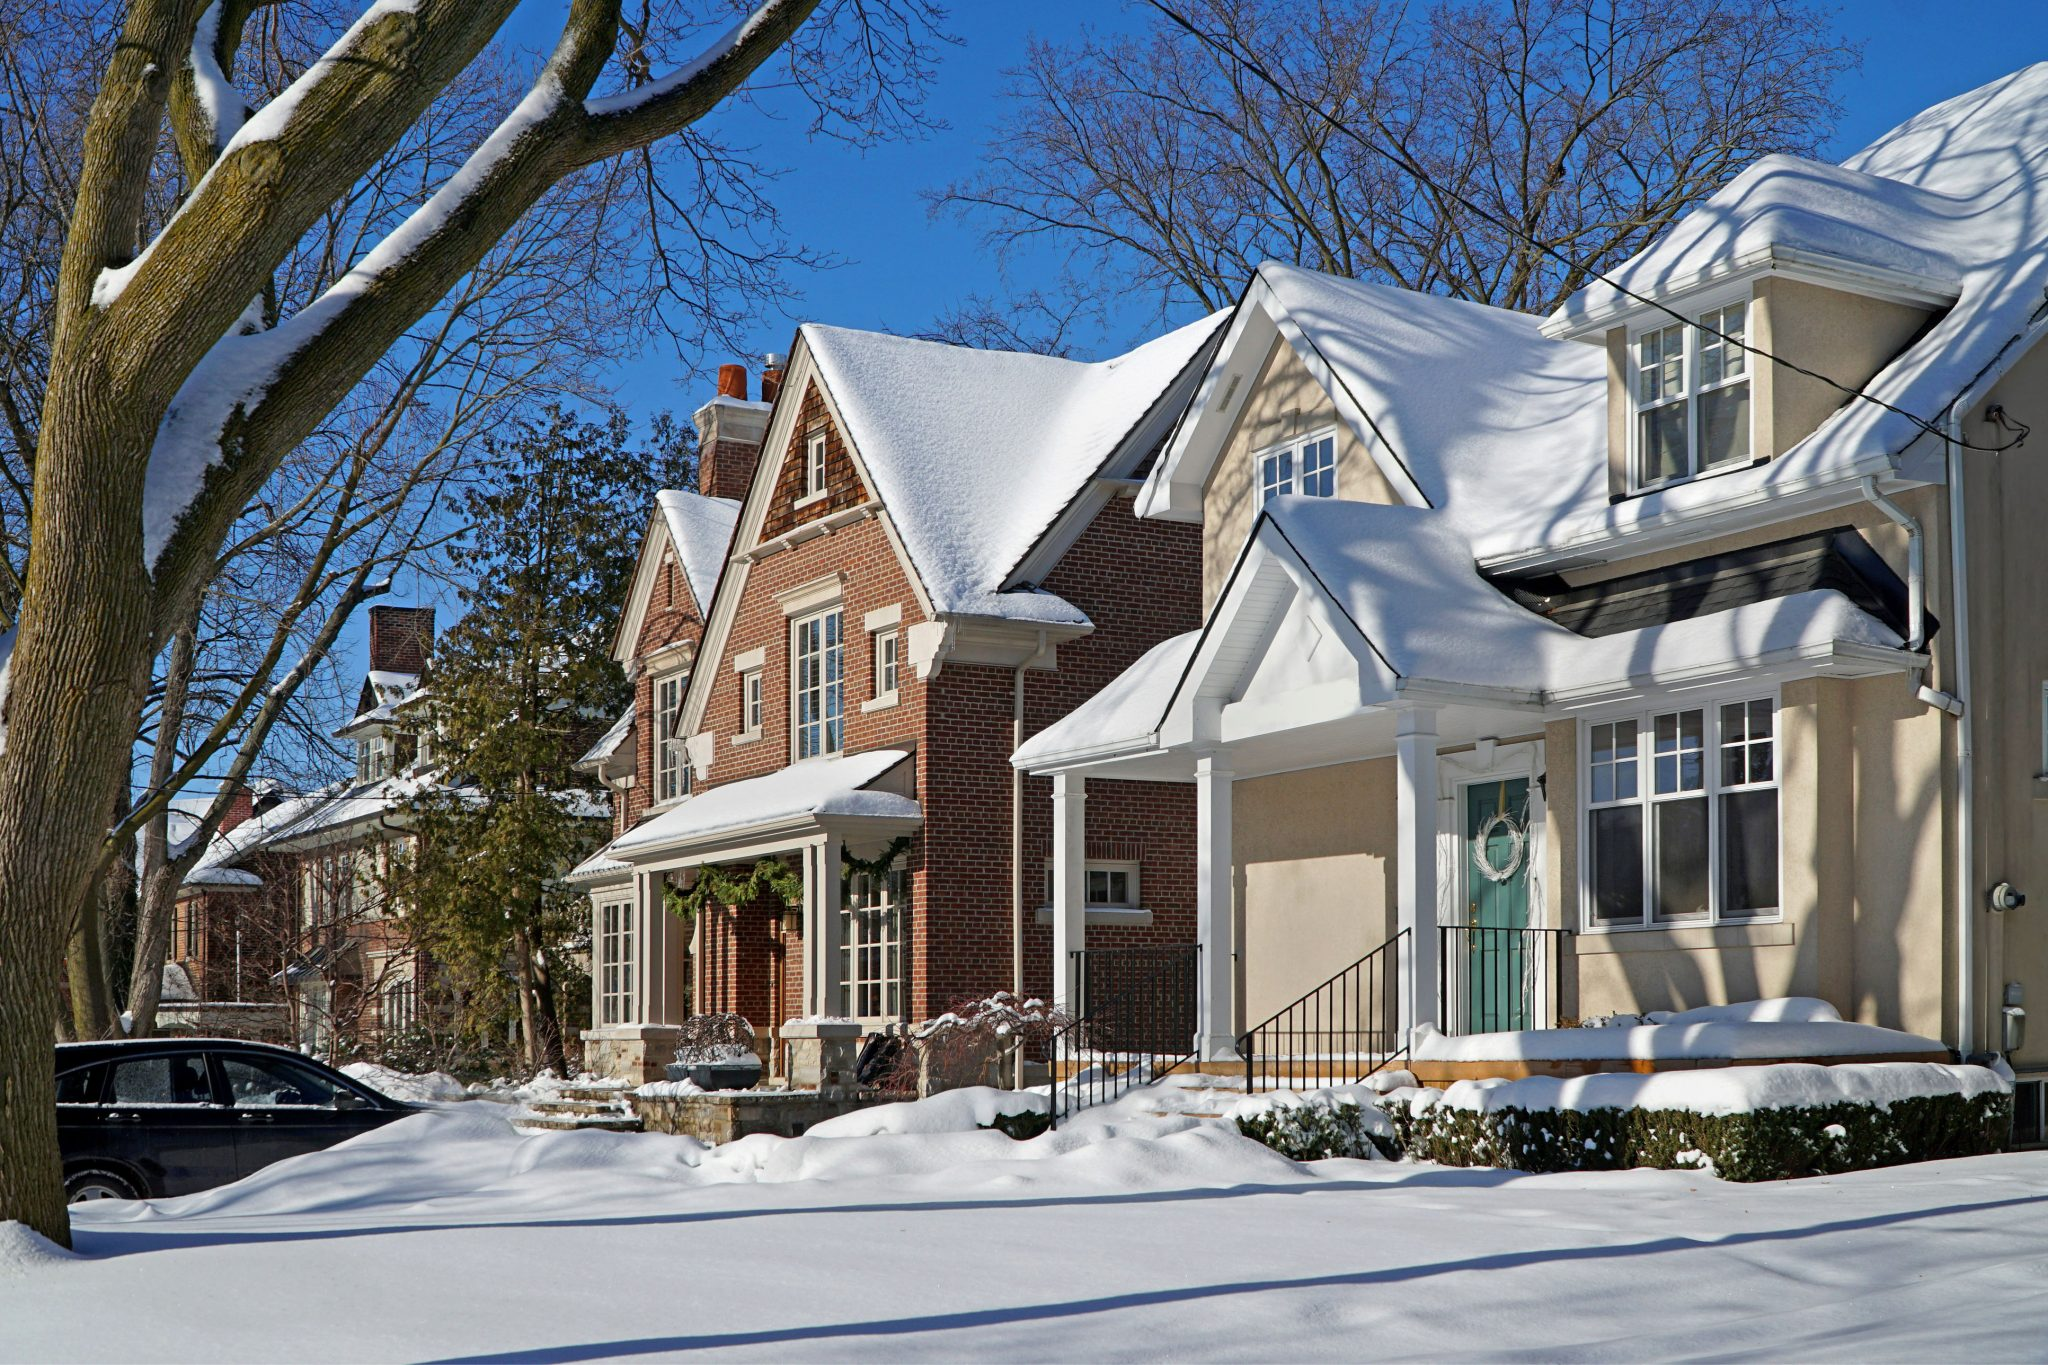 5 Energy-Saving Tips for Winter